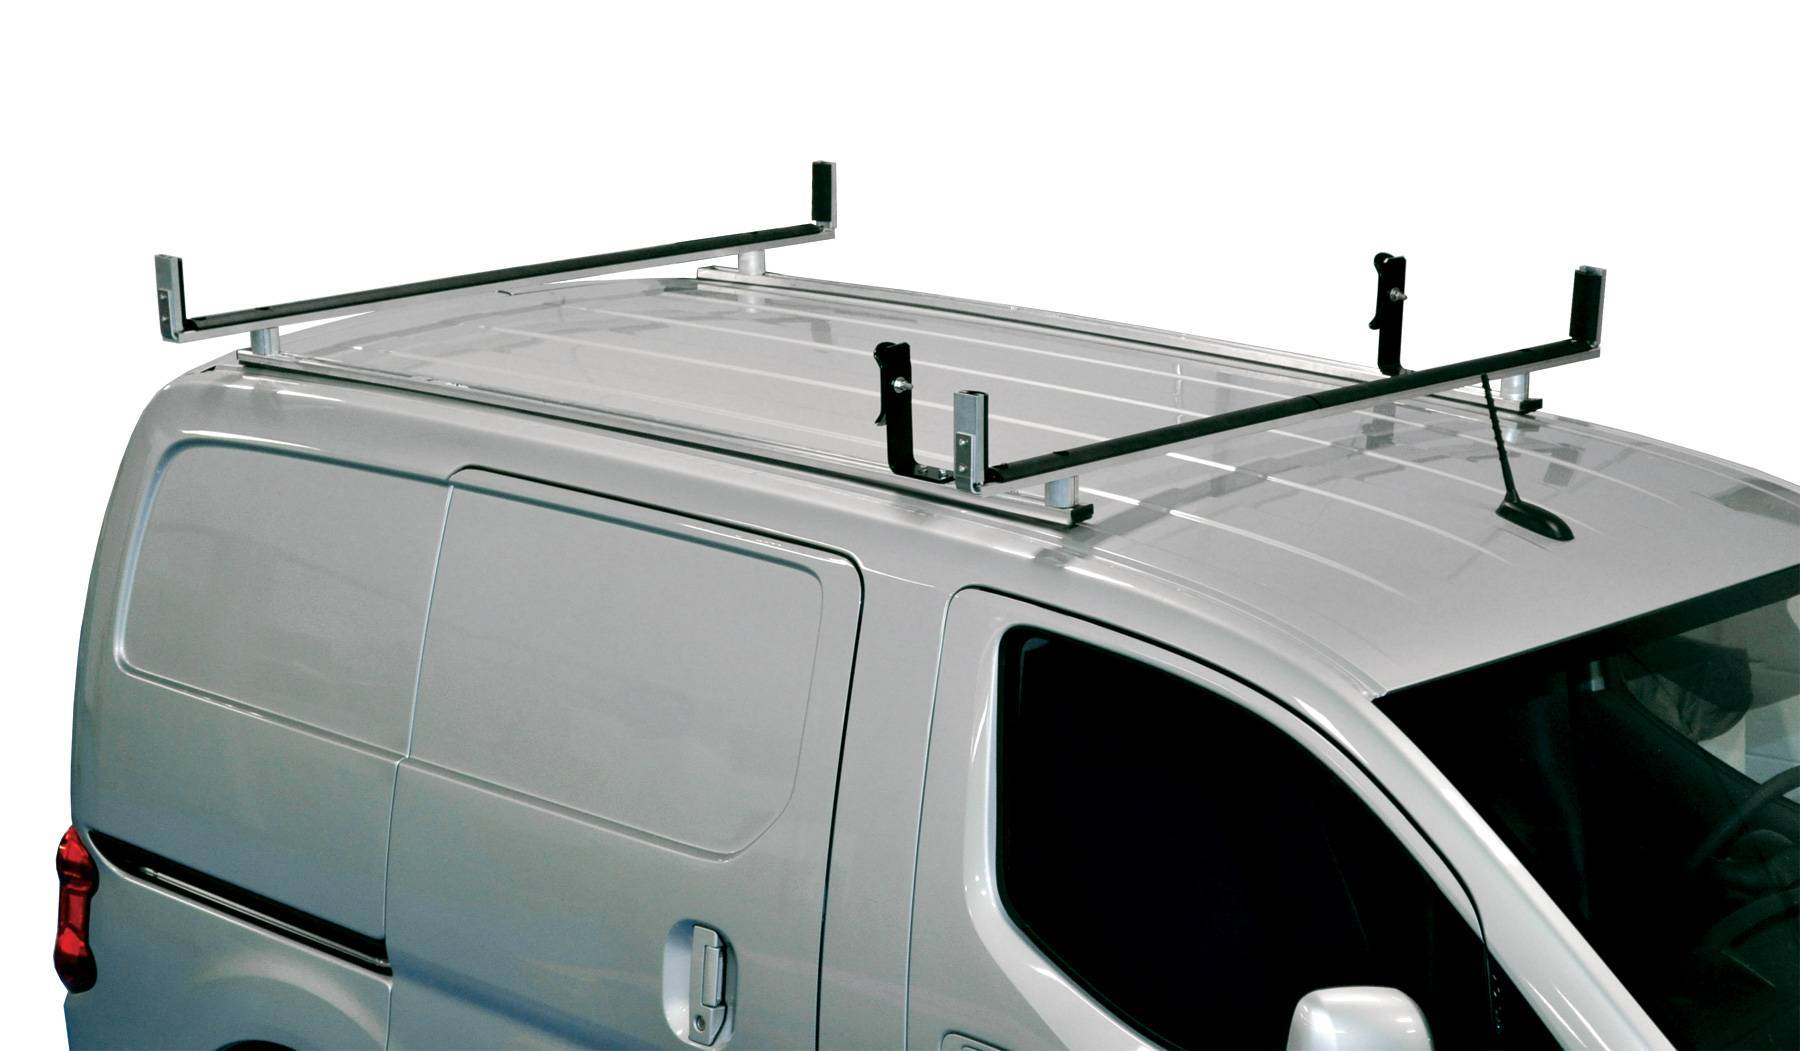 nissan nv200 chevy city express ladder rack partition and interior cabinet chat window. Black Bedroom Furniture Sets. Home Design Ideas